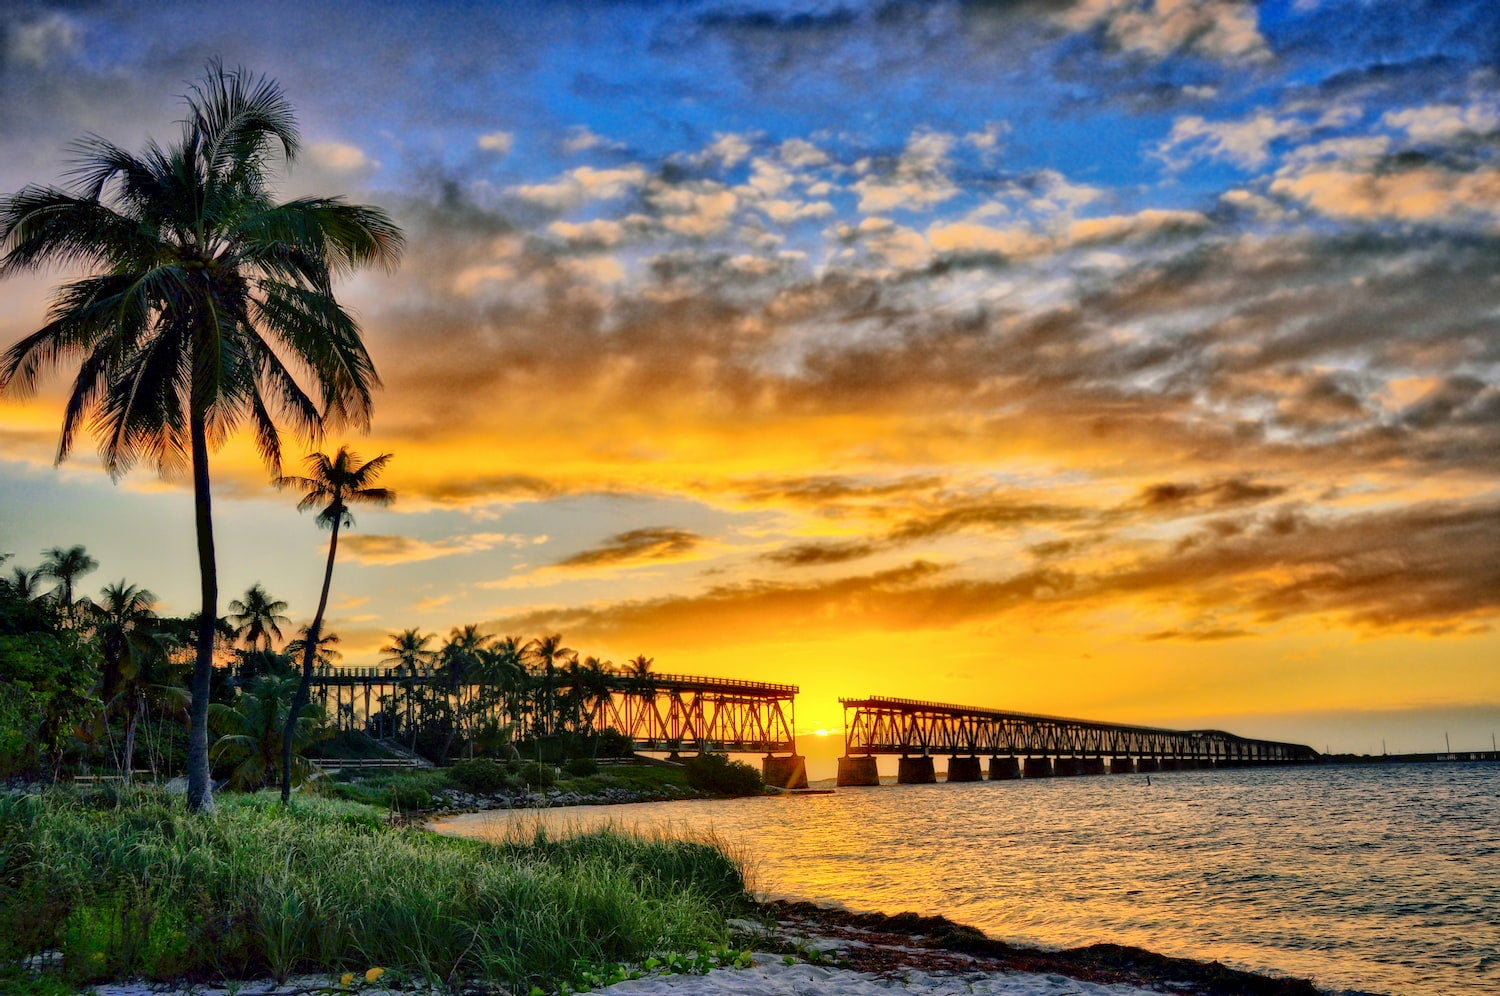 sunset of beach, pier, and palm tress at bahia honda state park